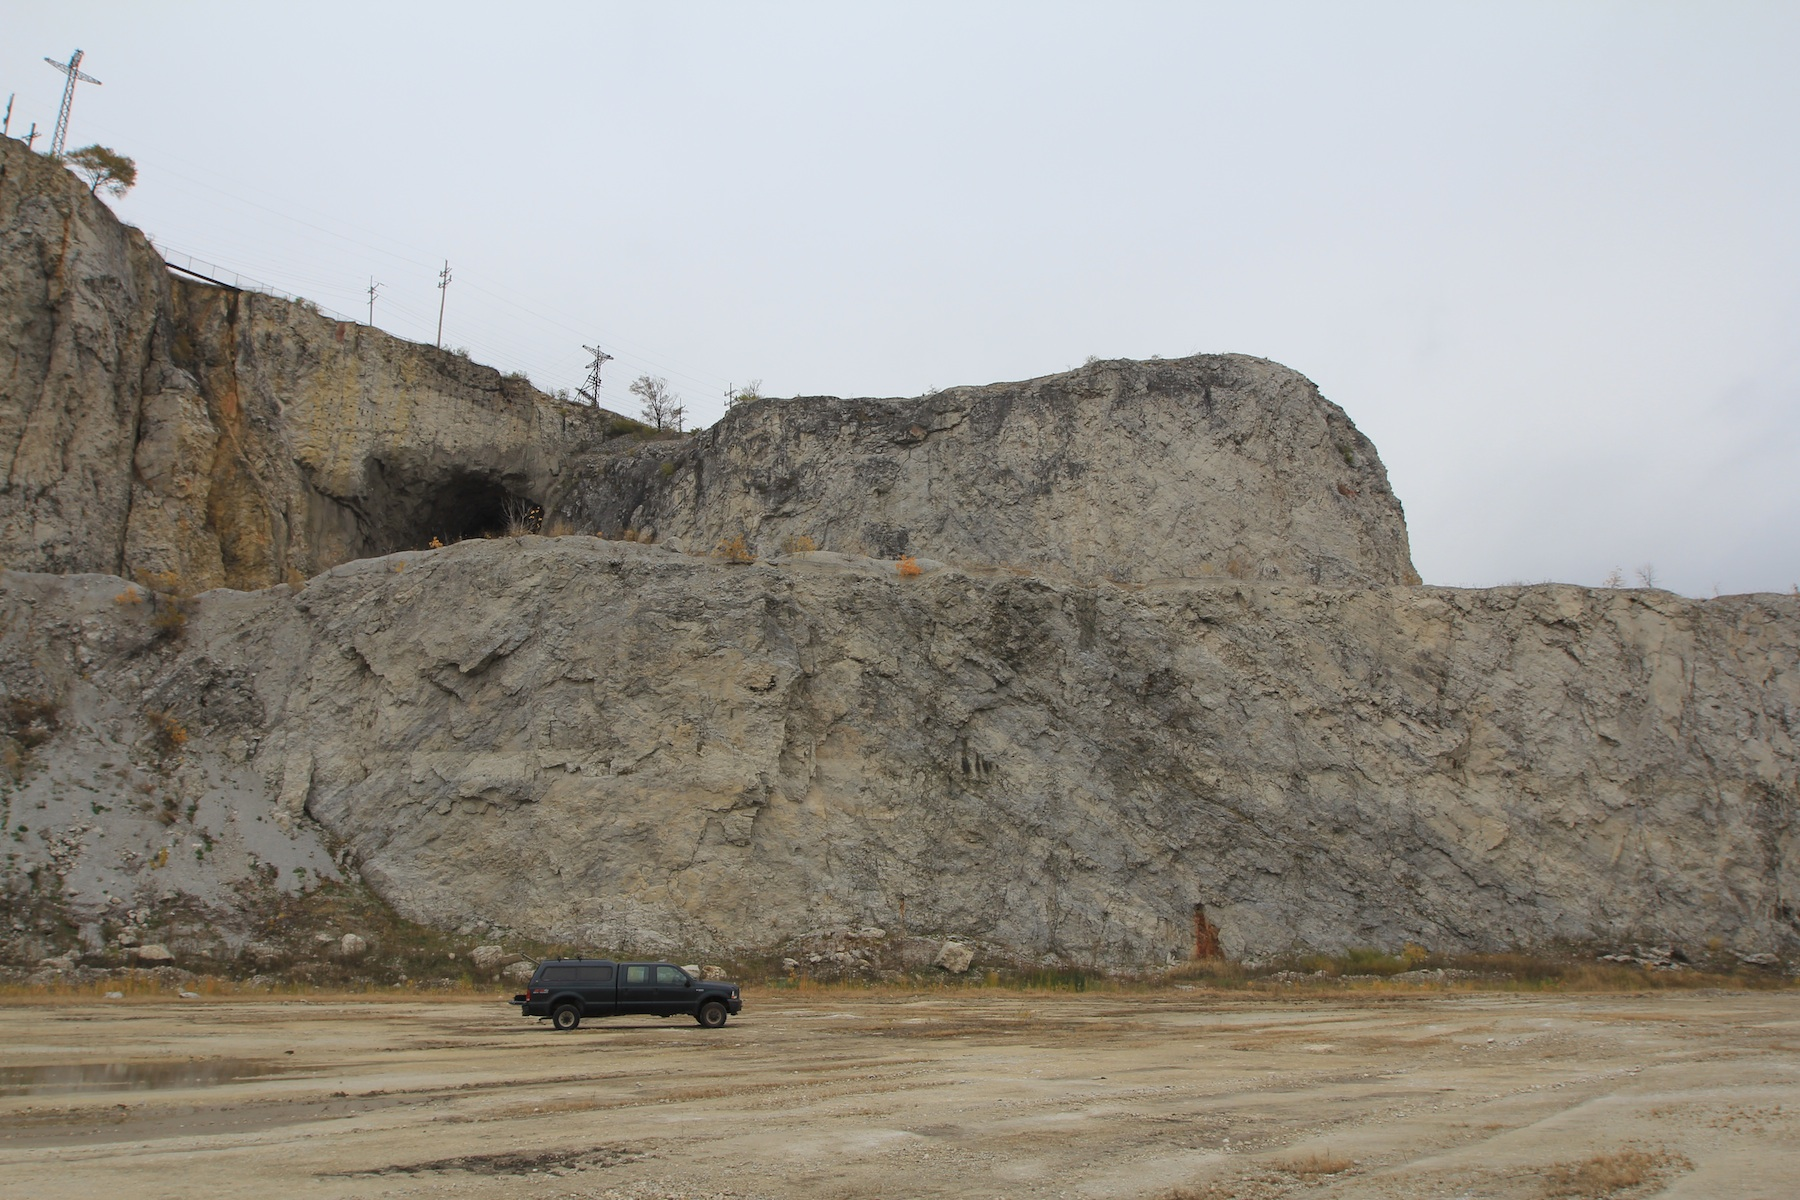 A silurian reef at Thornton Quarry, Illinois, Reef Core with Flank beds dipping to both sides. Pickup truck for scale.